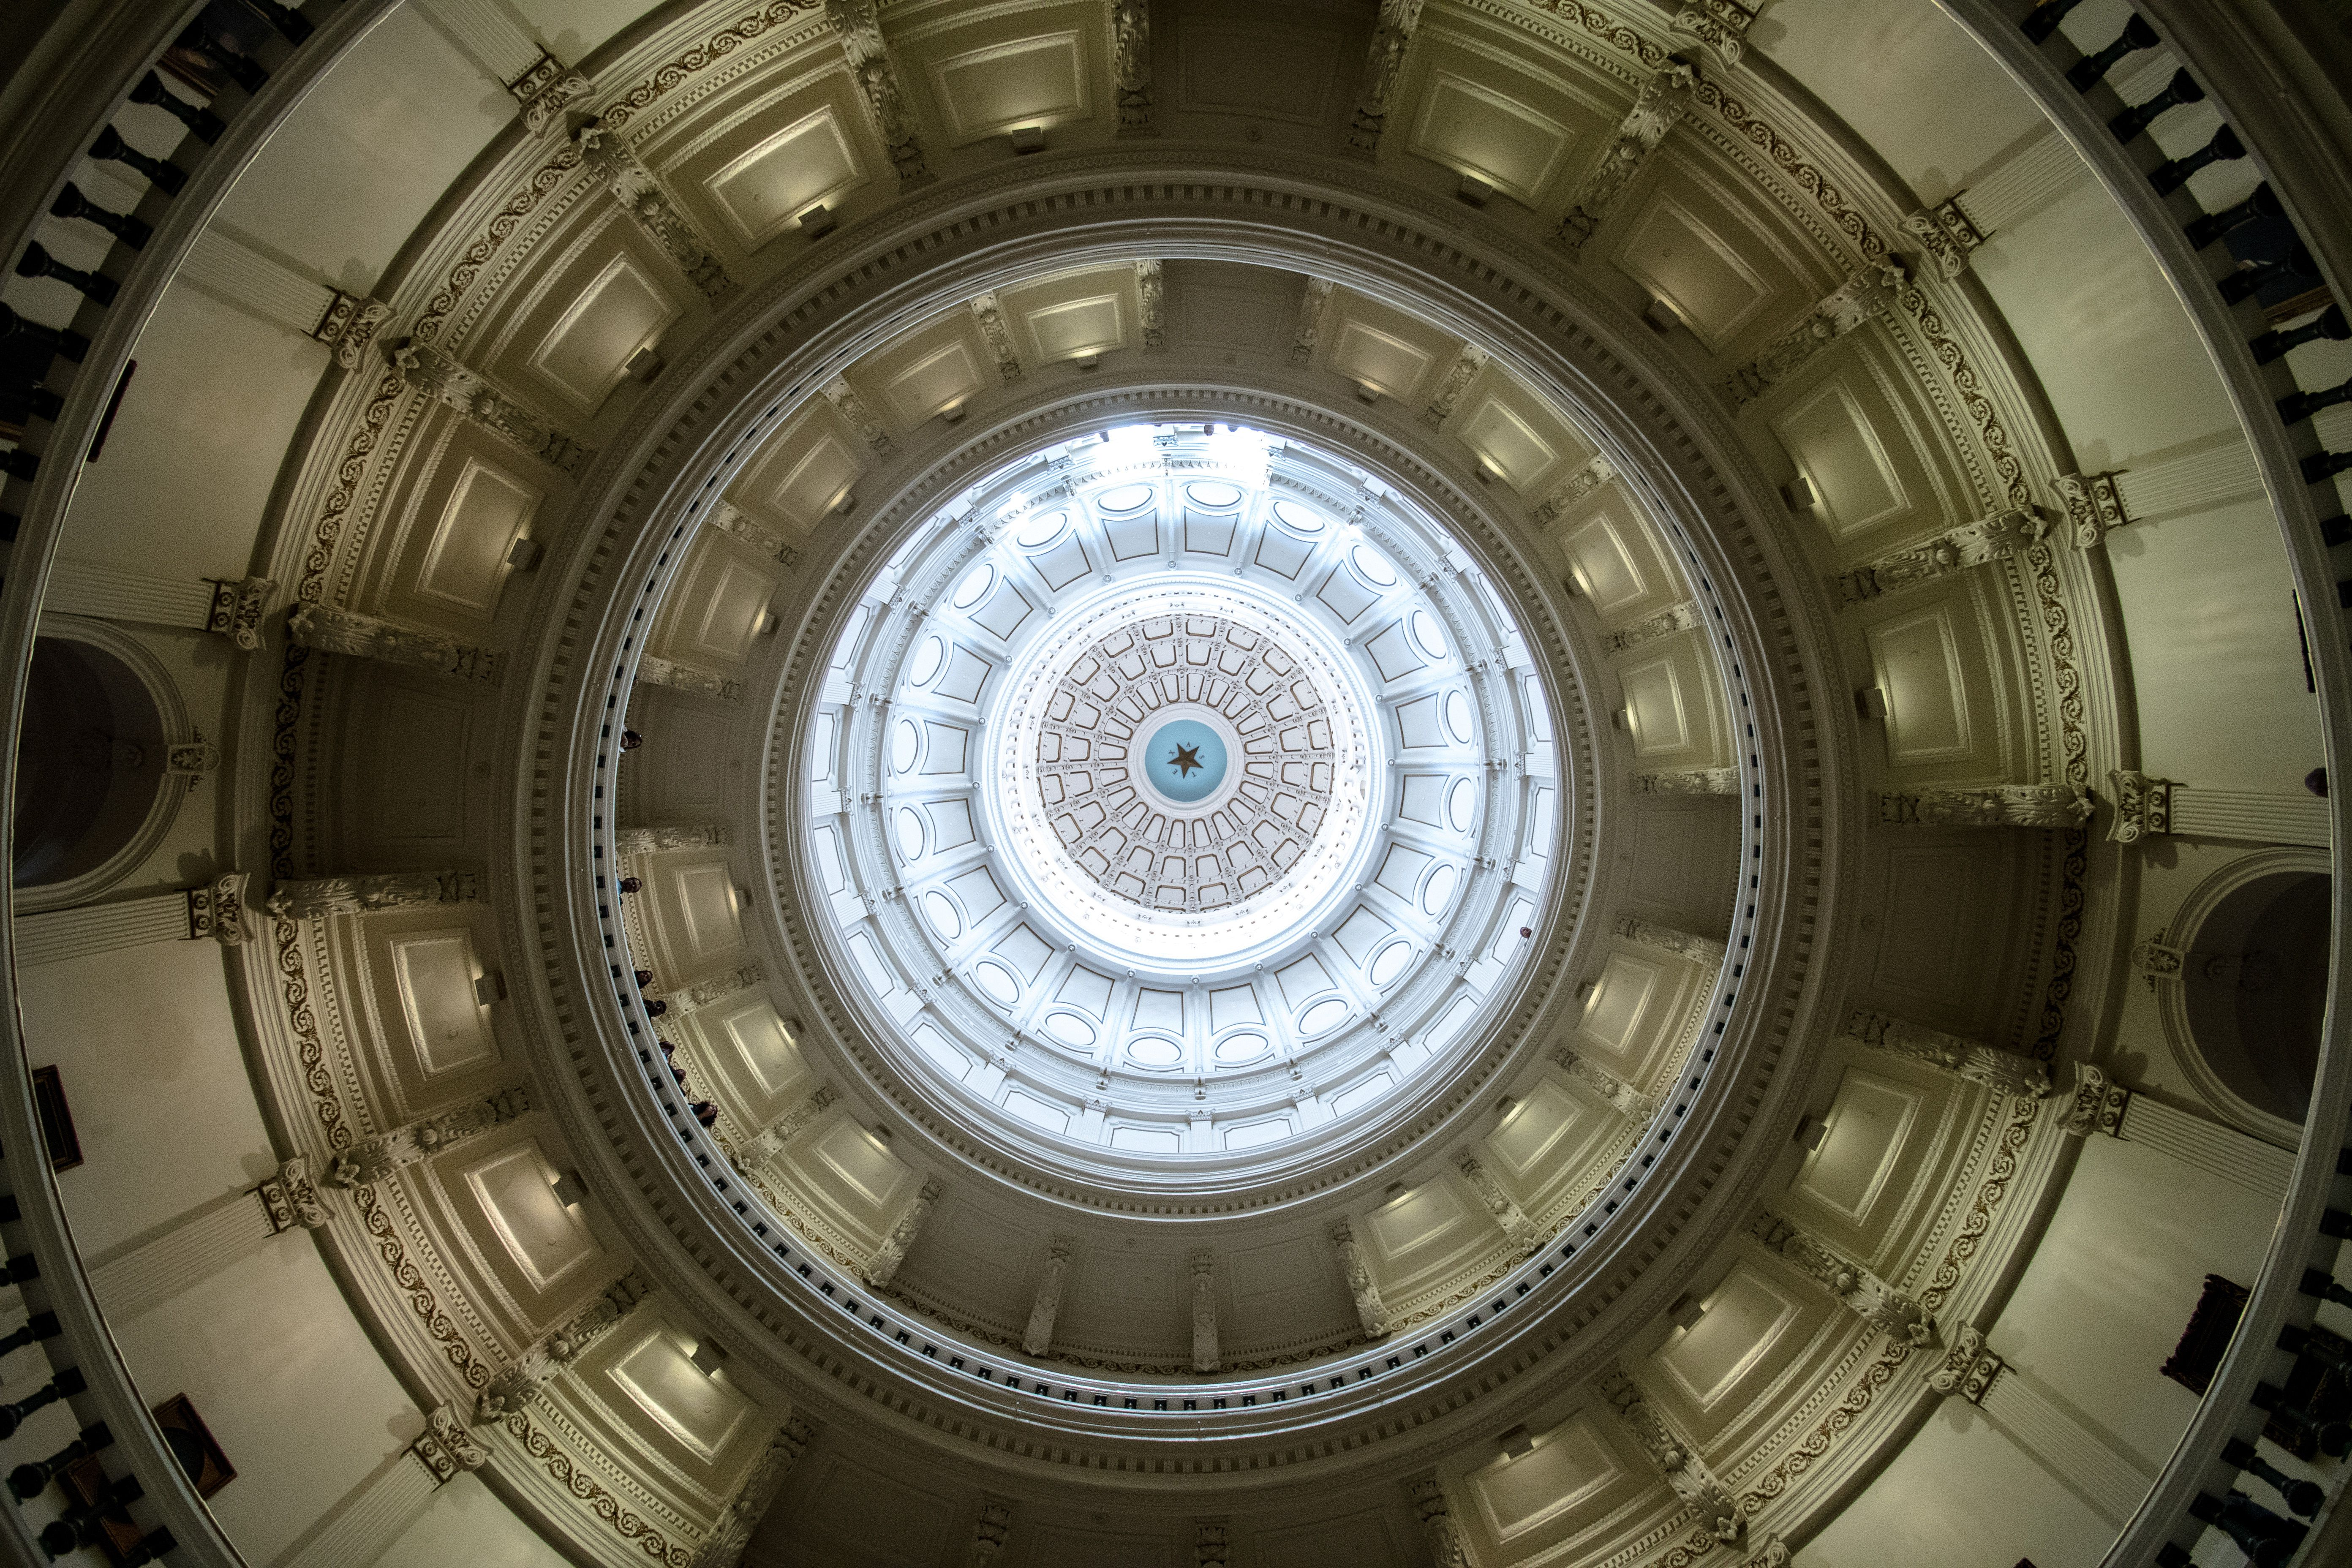 Inside of the rotunda in the capitol building